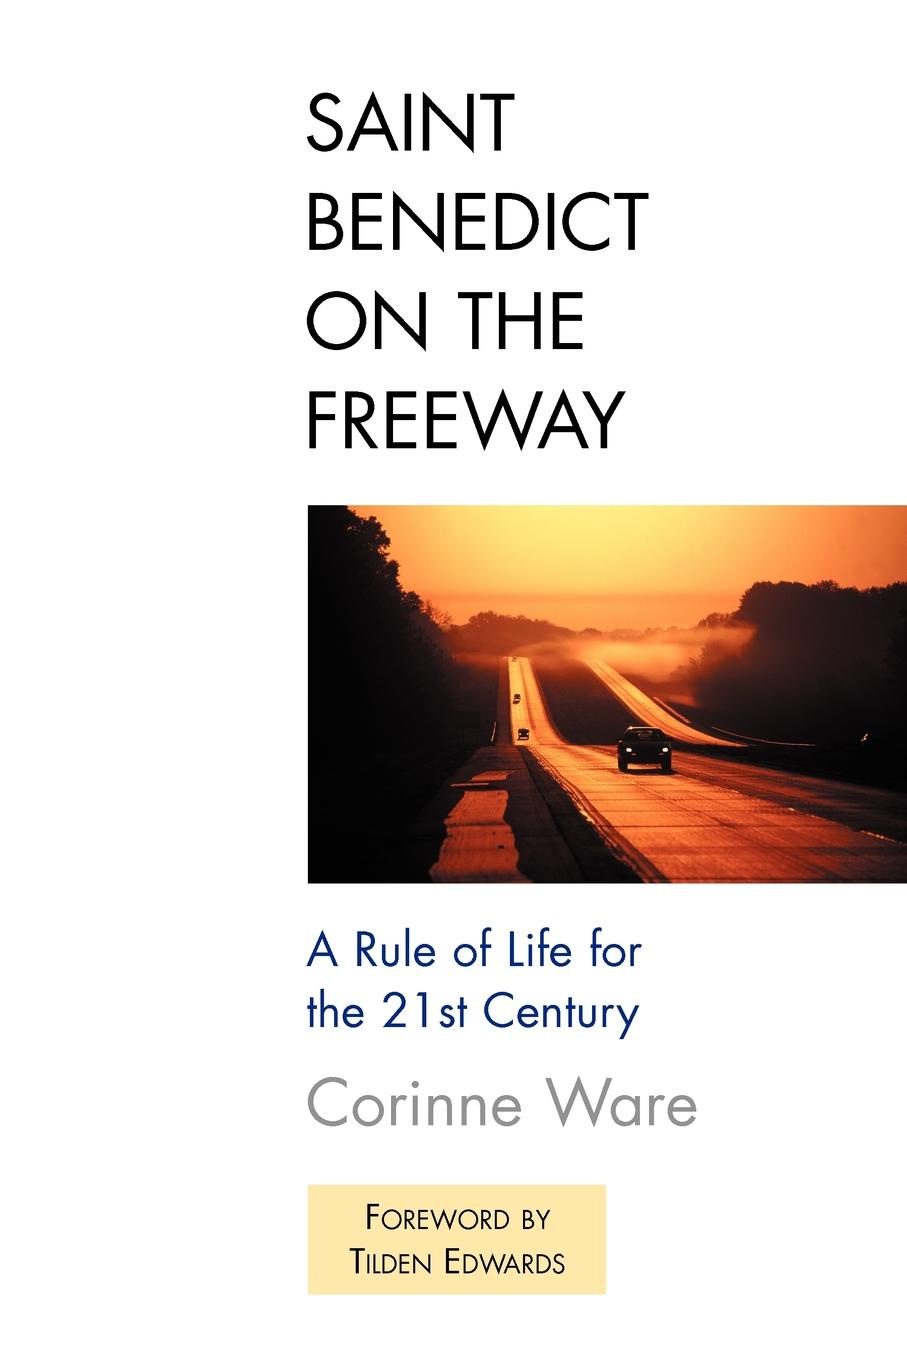 цена на Corinne Ware Saint Benedict on the Freeway. A Rule of Life for the 21st Century